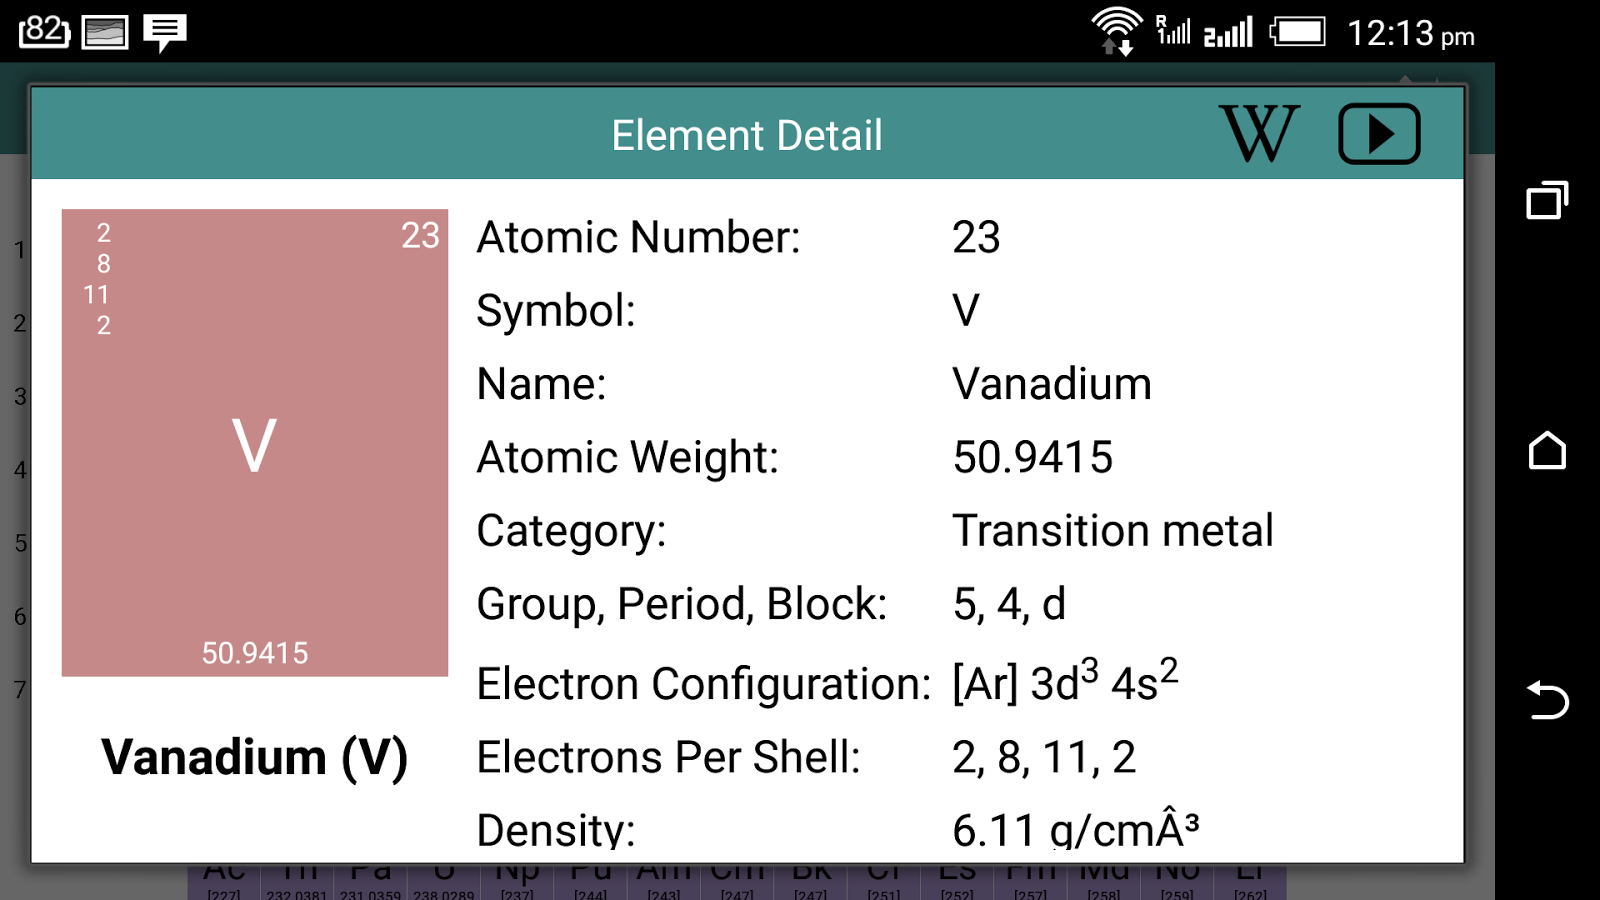 Periodic table elements 15 apk communicating with stakeholders download android education apps 7et0yrdwjghiijqx7o63xj0vd25tmo sx9iohbxoej5wp5cnpnxpcaoascs2csuiaipeh900 periodictable periodic table elements 15 apk gamestrikefo Image collections